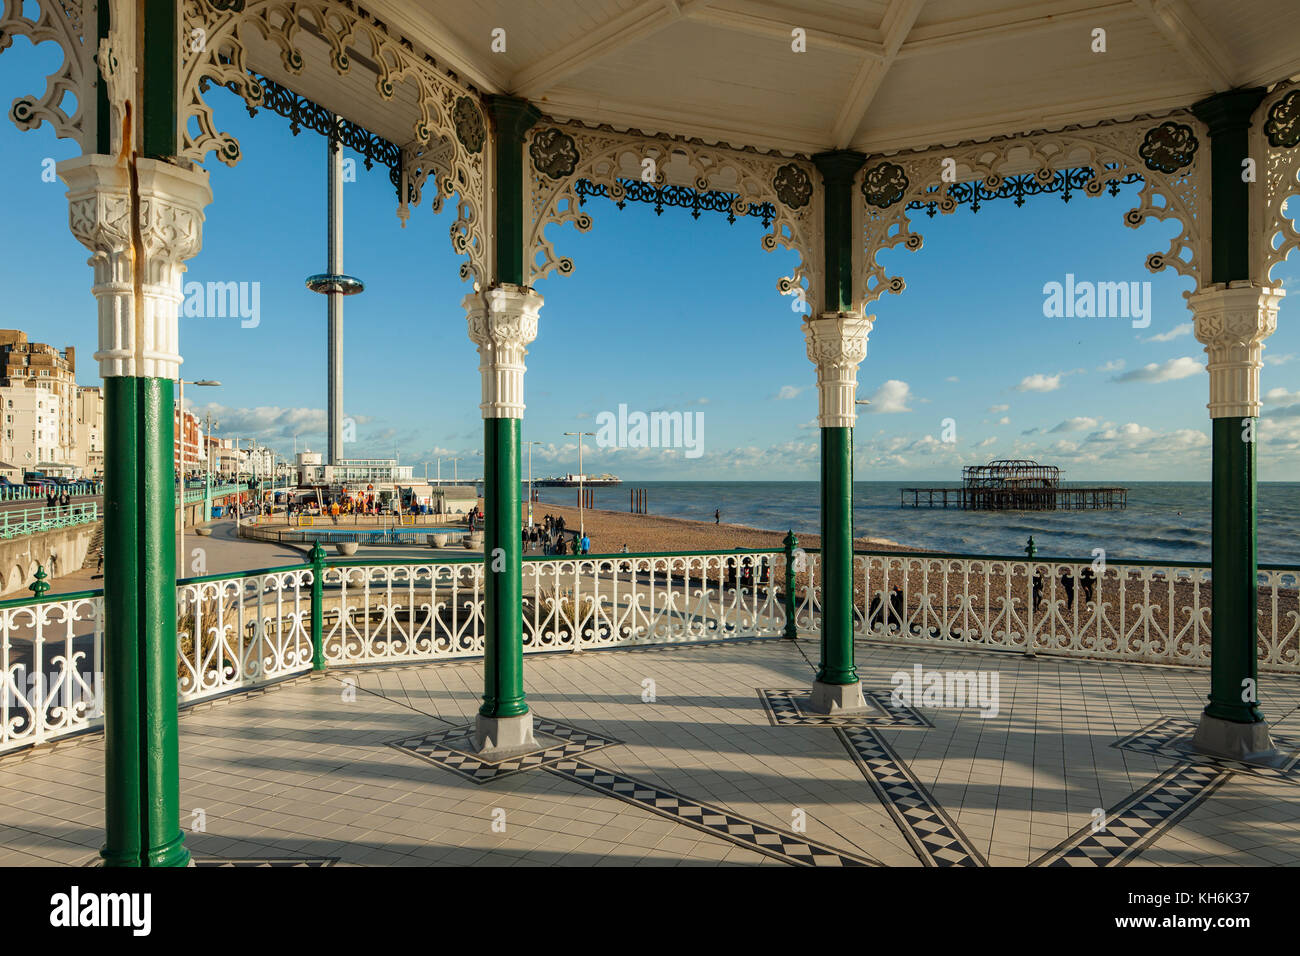 A view from Brighton Bandstand towards West Pier and i360 tower, East Sussex, England. - Stock Image